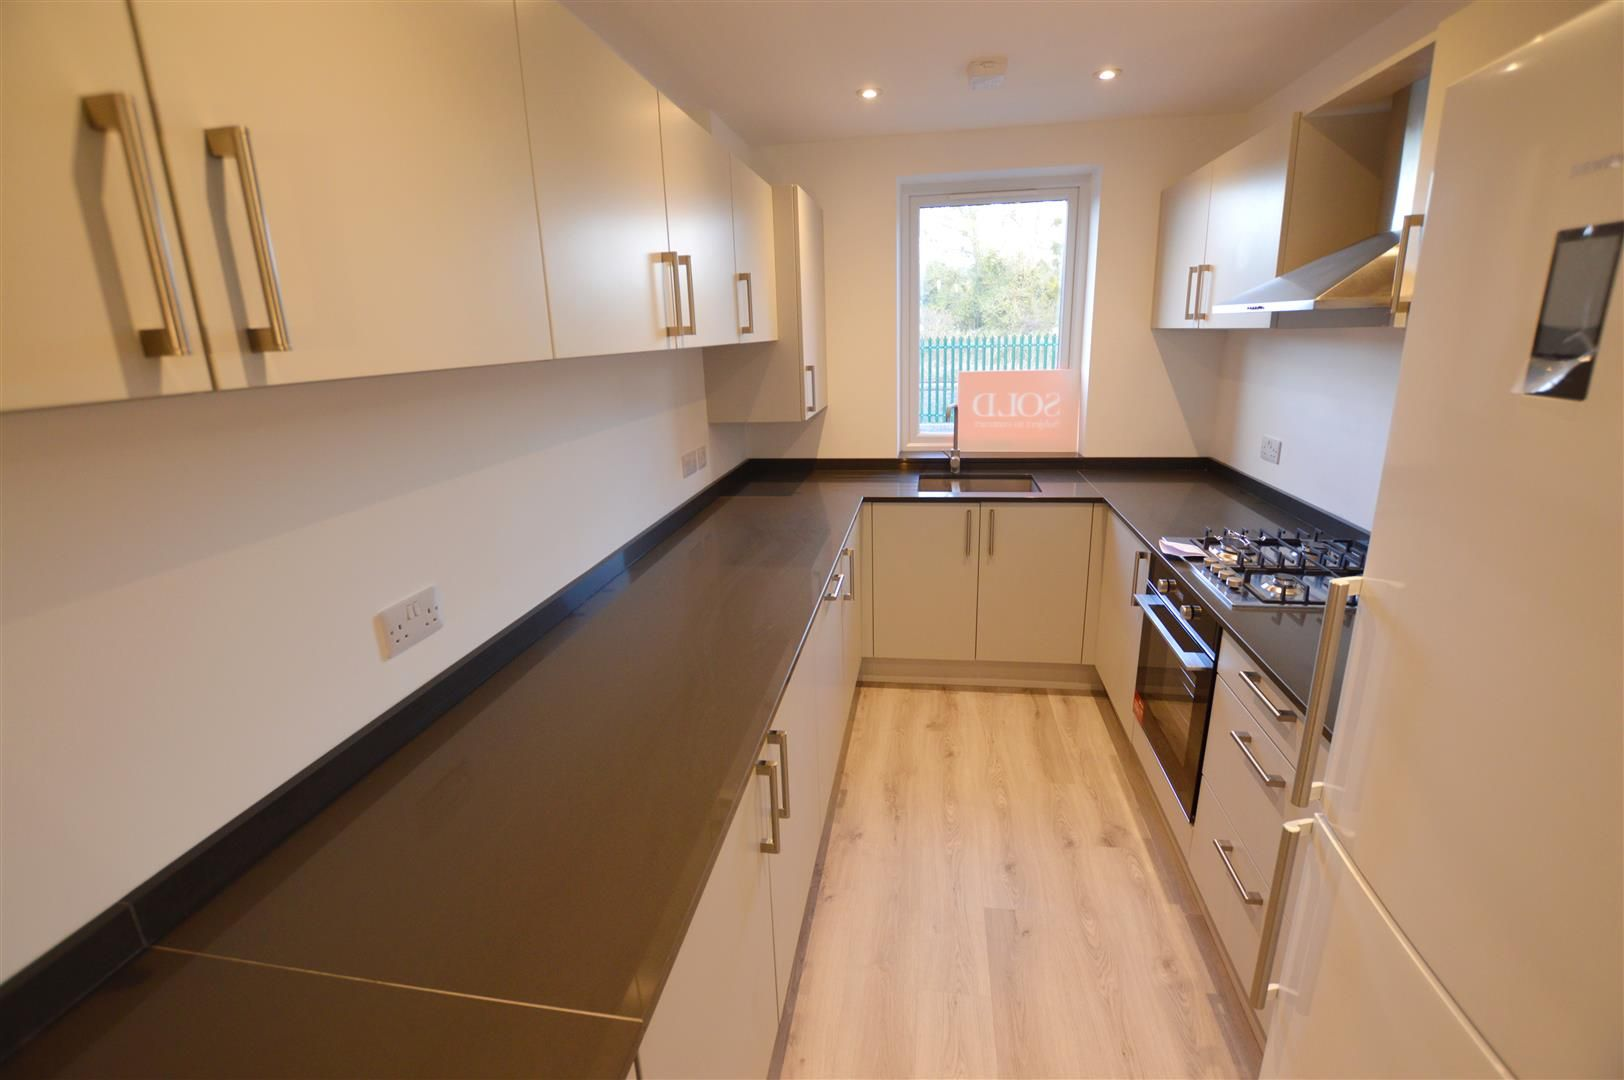 3 bed terraced for sale in Leominster 2